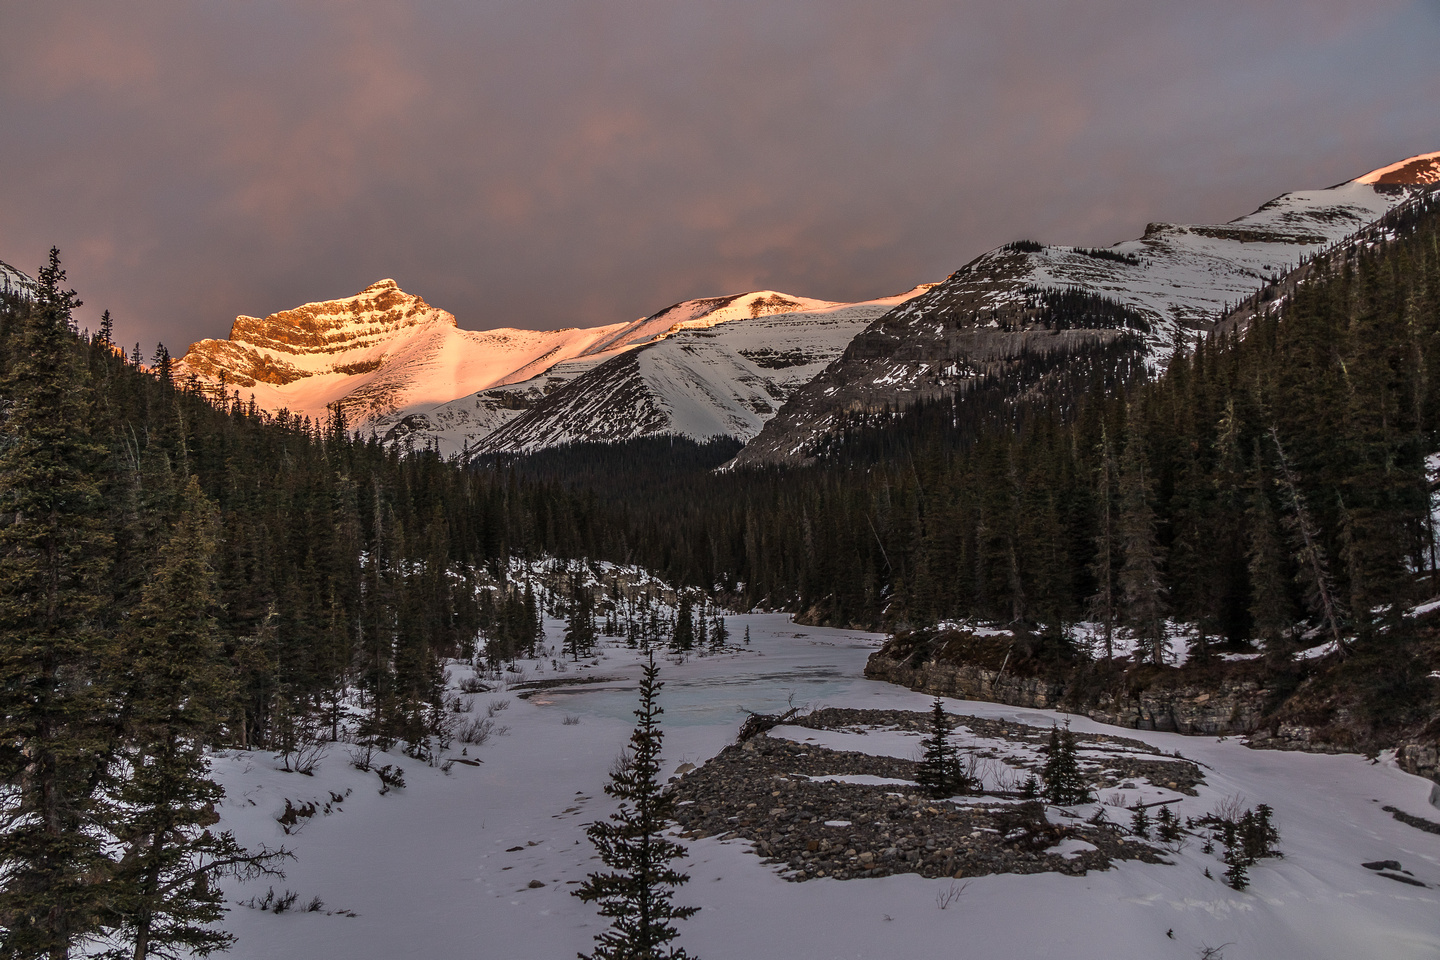 Sunrise on Davidson from our bivy site, Waiparous Peak is just out of sight at center right.